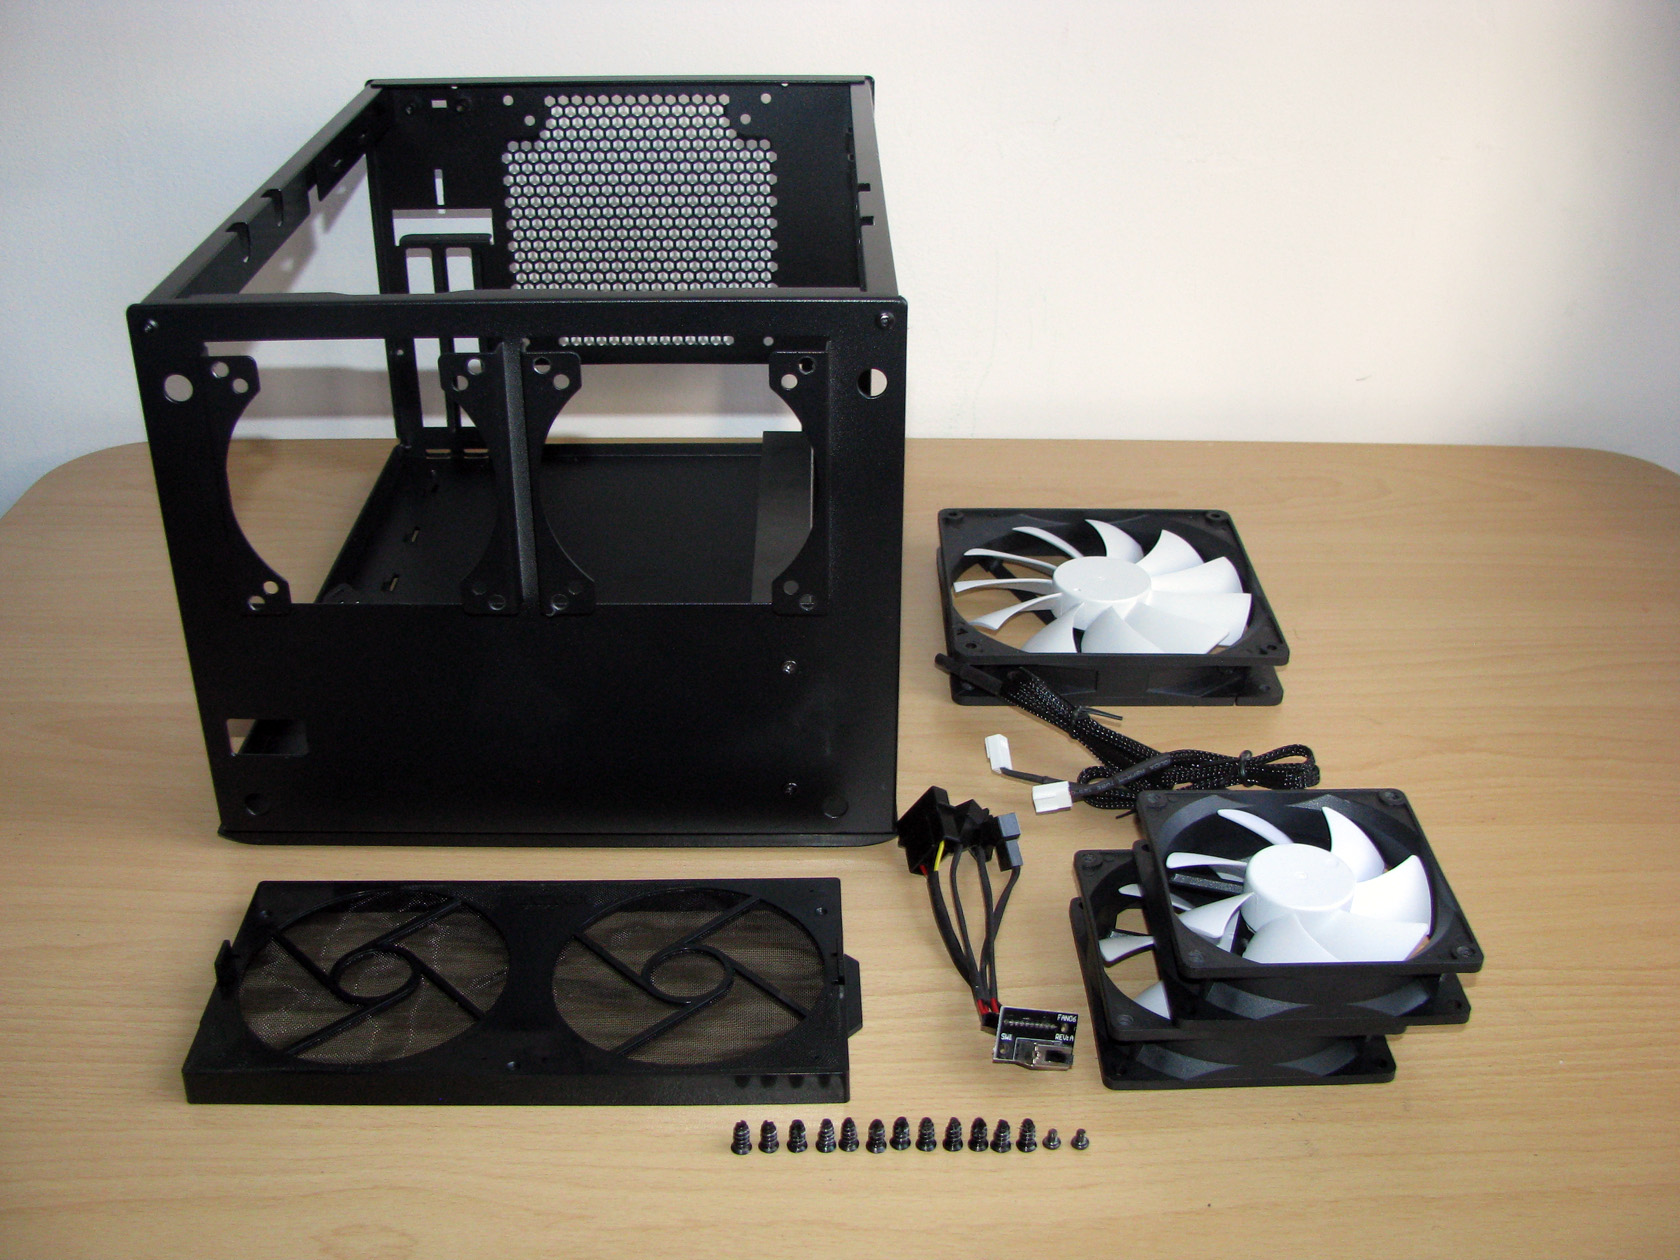 Fractal Design Offered 3 Fans A Fan Controller And Dust Filter To Handle Cooling The Parts Installed Inside Case Will That Be Effective